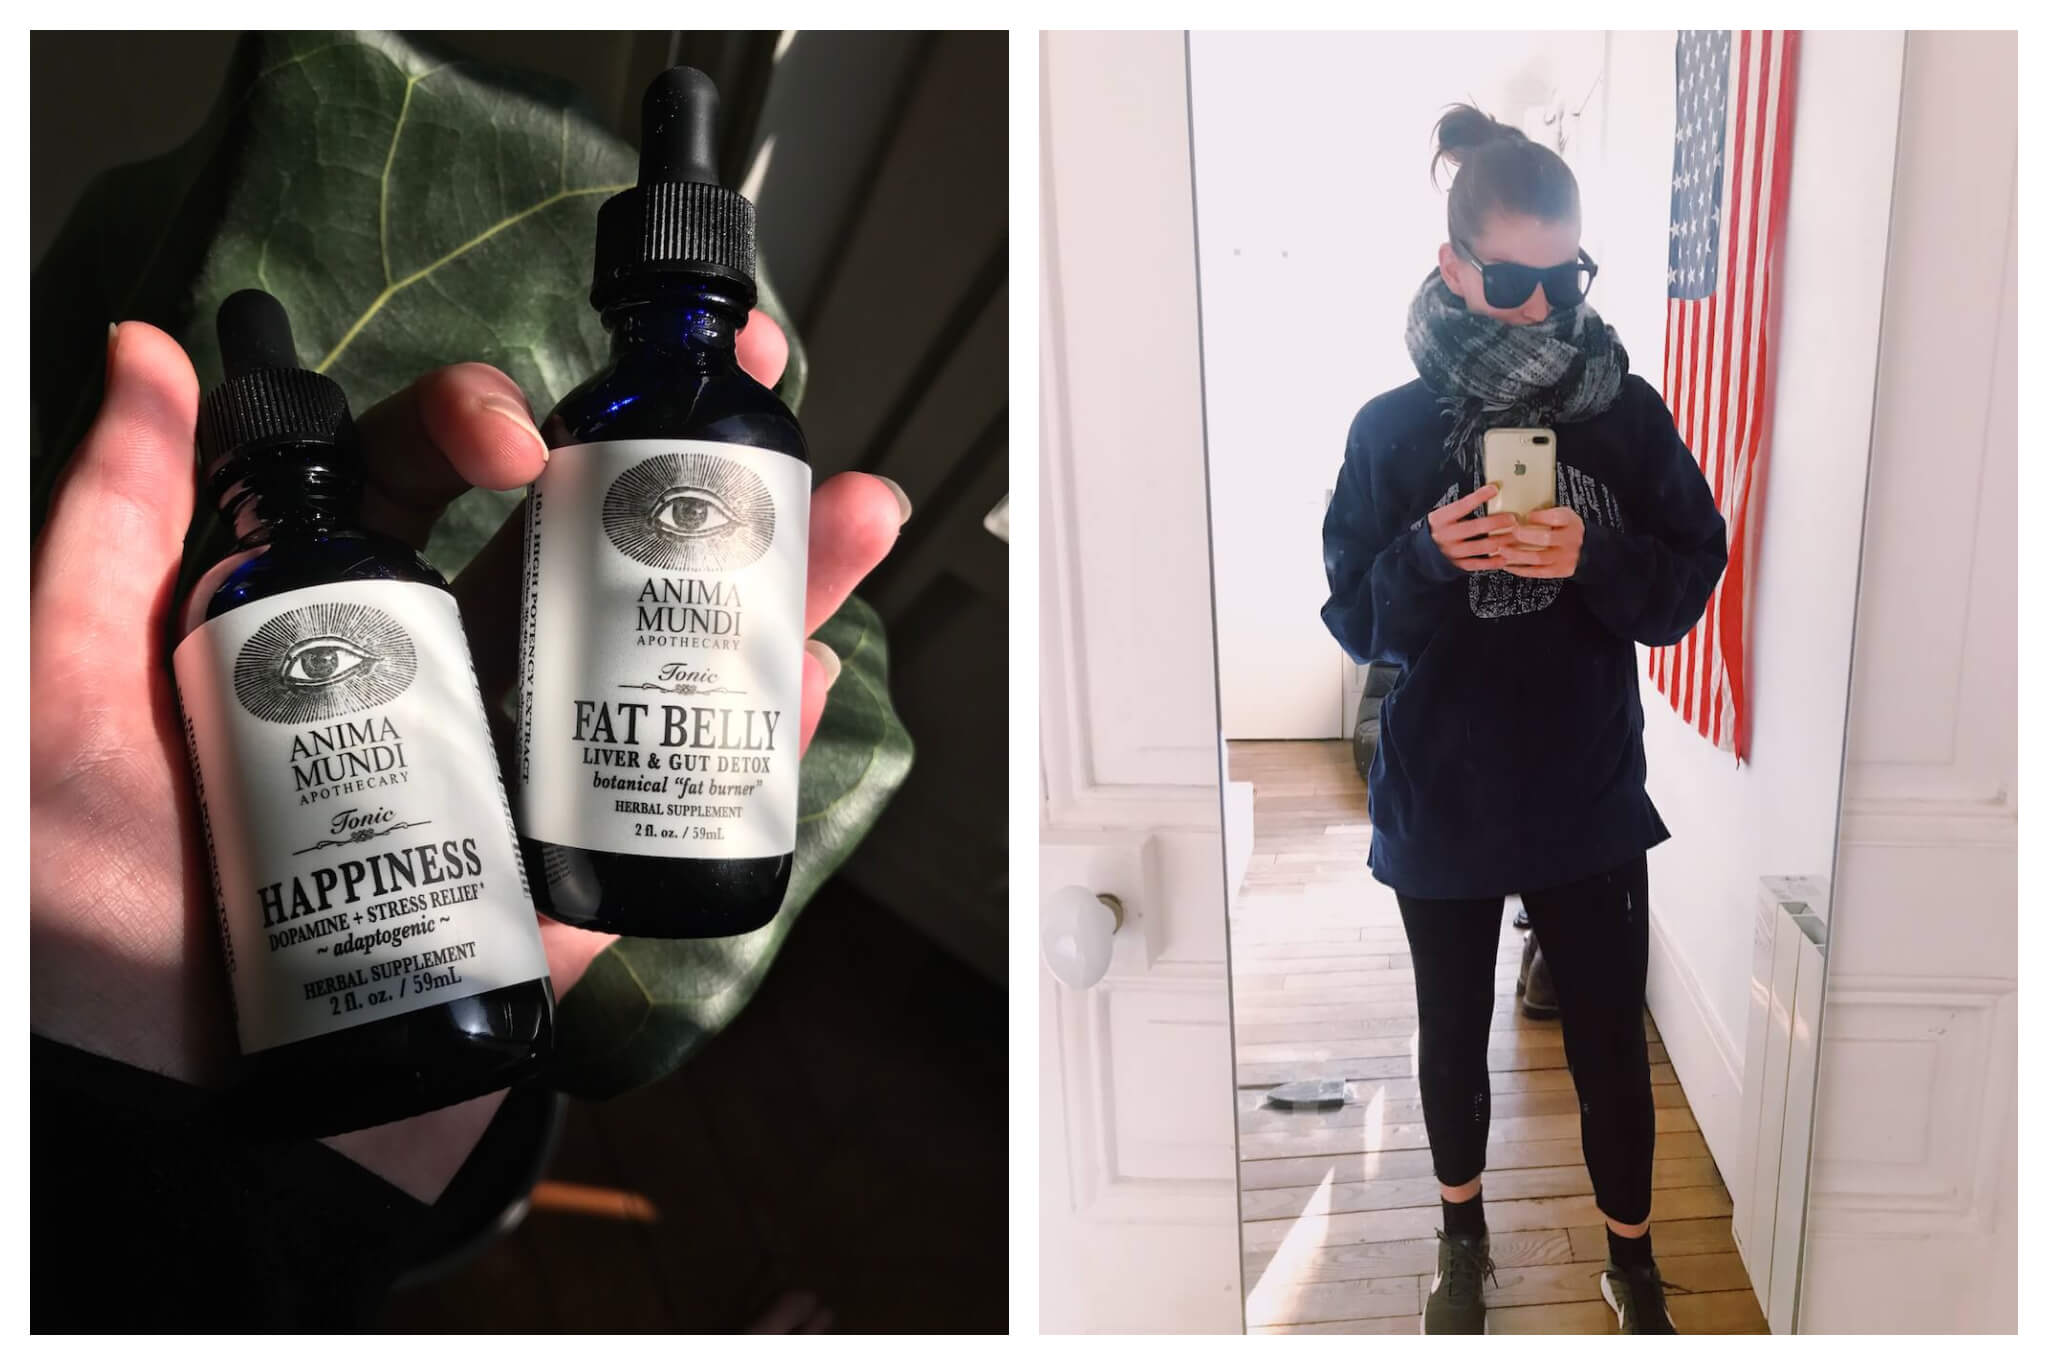 Left: Herbal supplements are held in a ray of sunlight inside an apartment. Right: Erin takes a selfie in the mirror of her apartment.